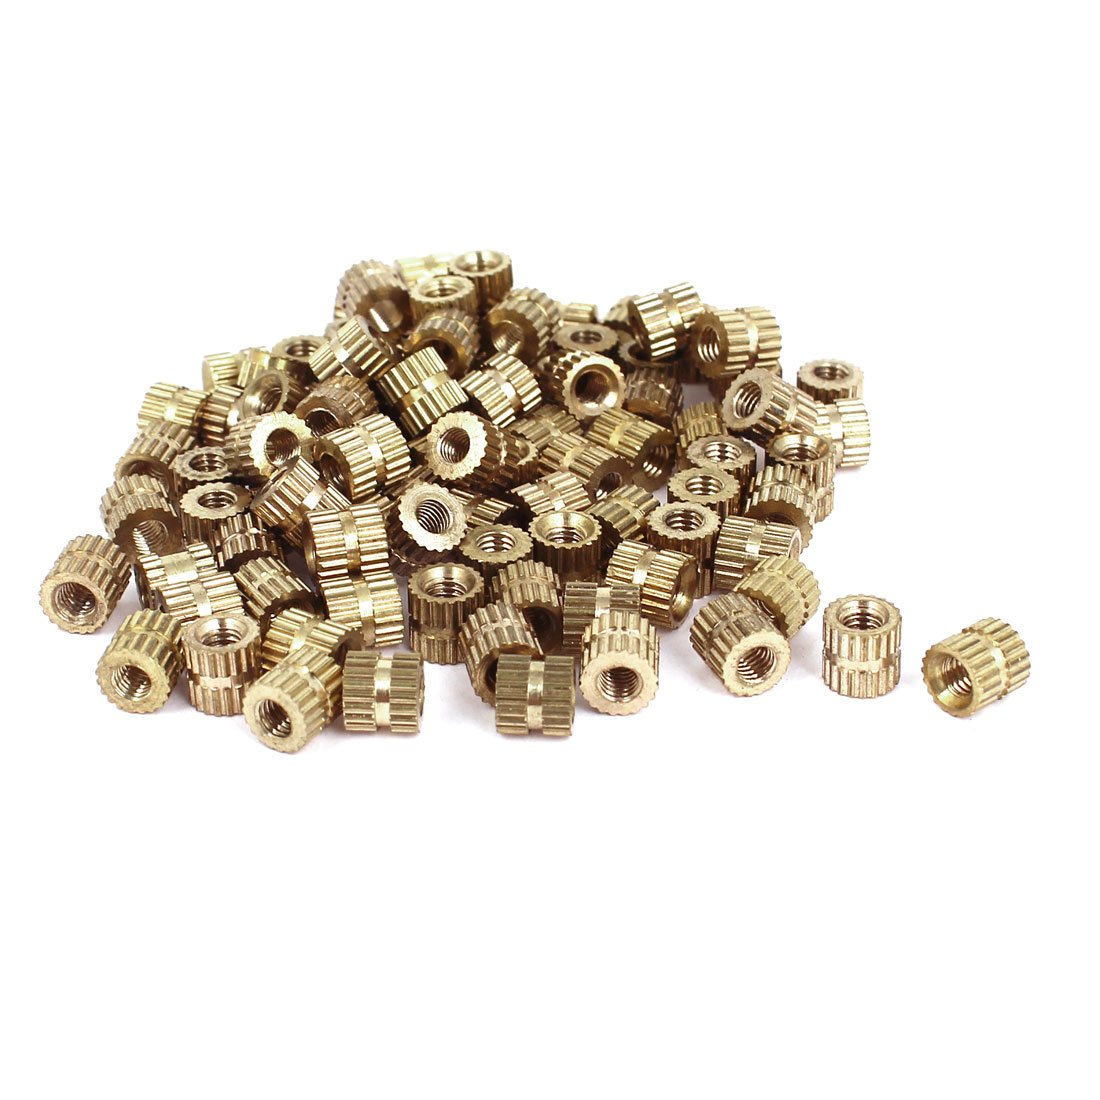 M3x5mm(L)-5mm(OD) Metric Threaded Brass Knurl Round Insert Nuts 100pcs